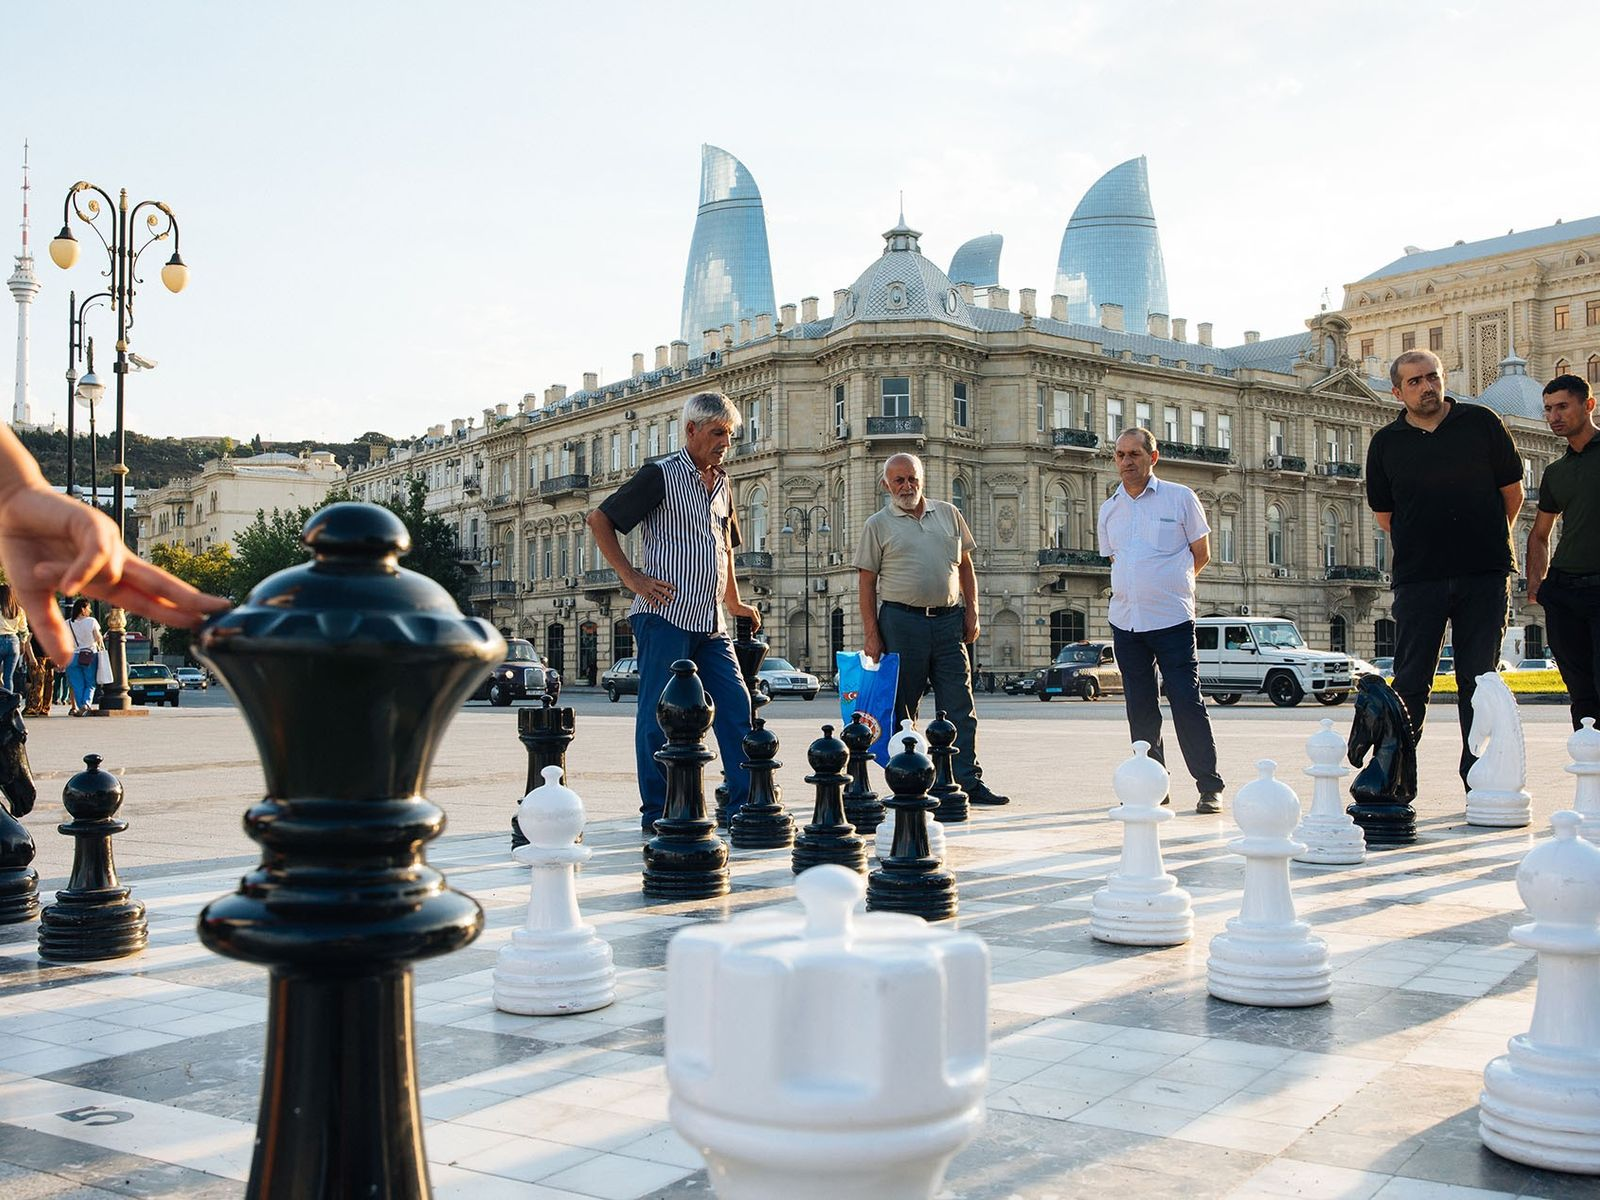 Men playing chess on a giant board in Azneft Square, near the Bulvar.